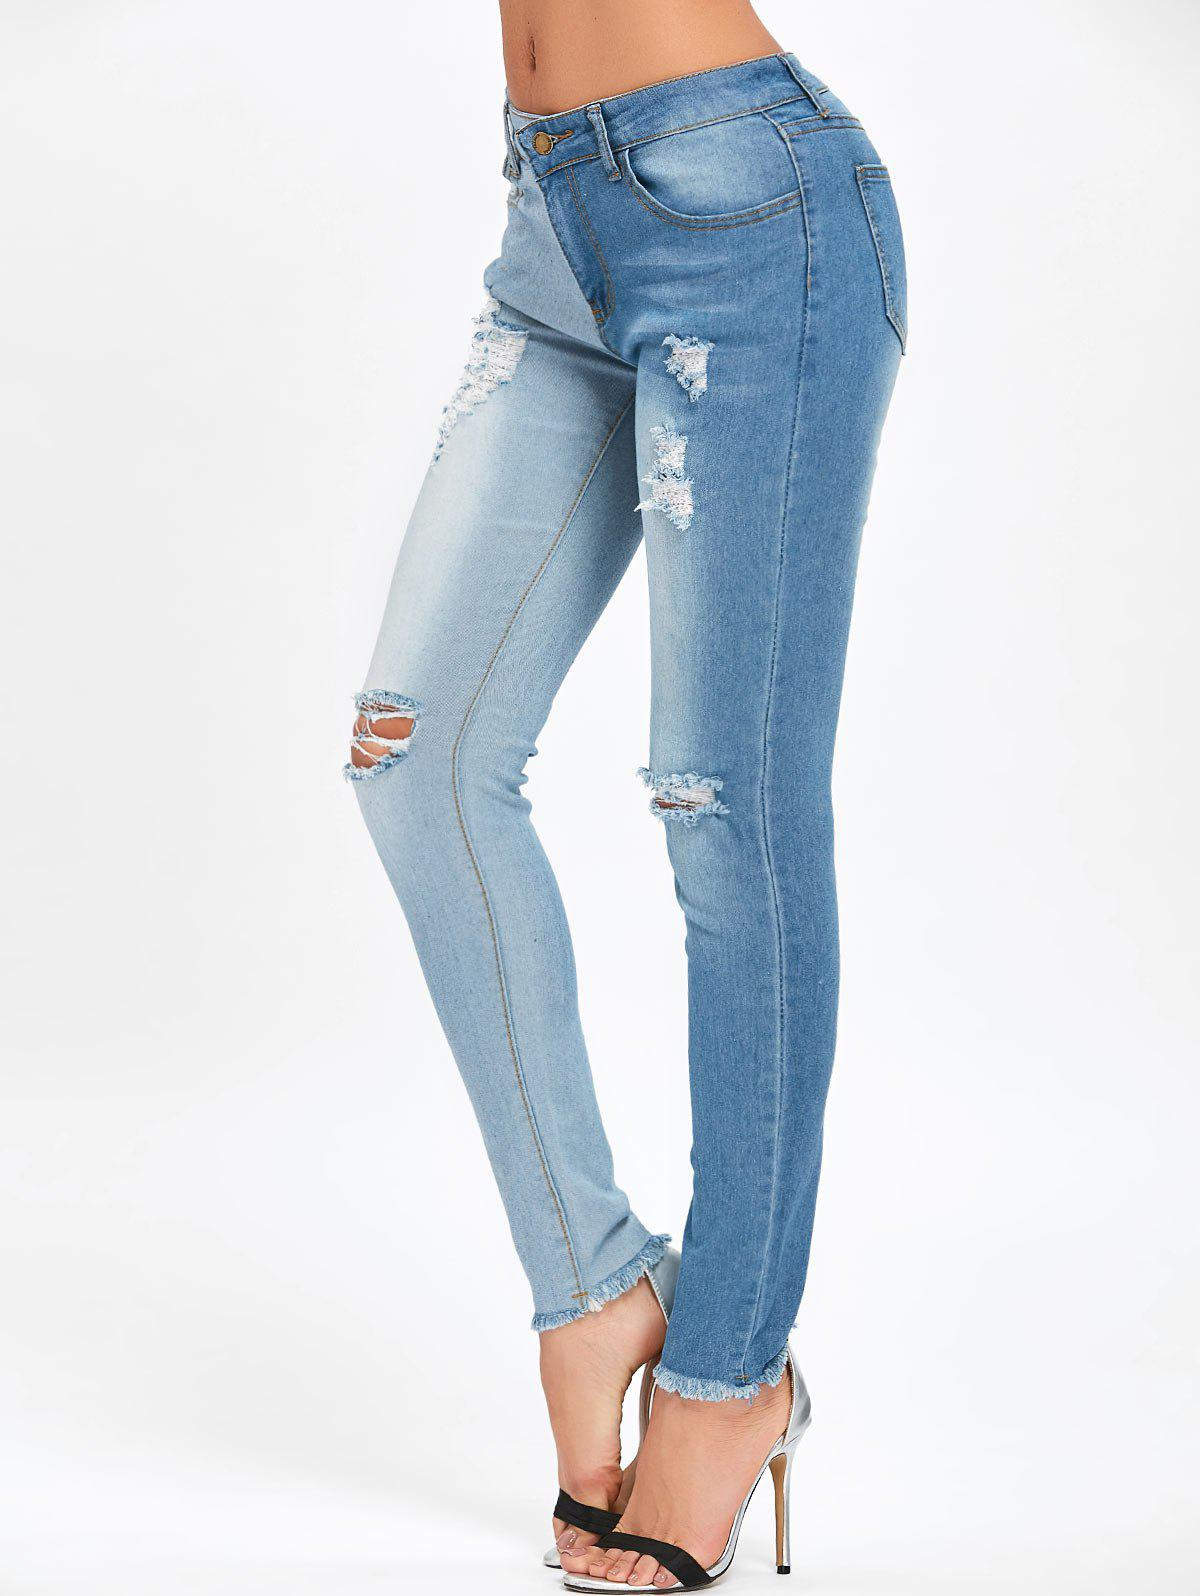 Frayed Hem Ripped Two Tone Jeans 248927901